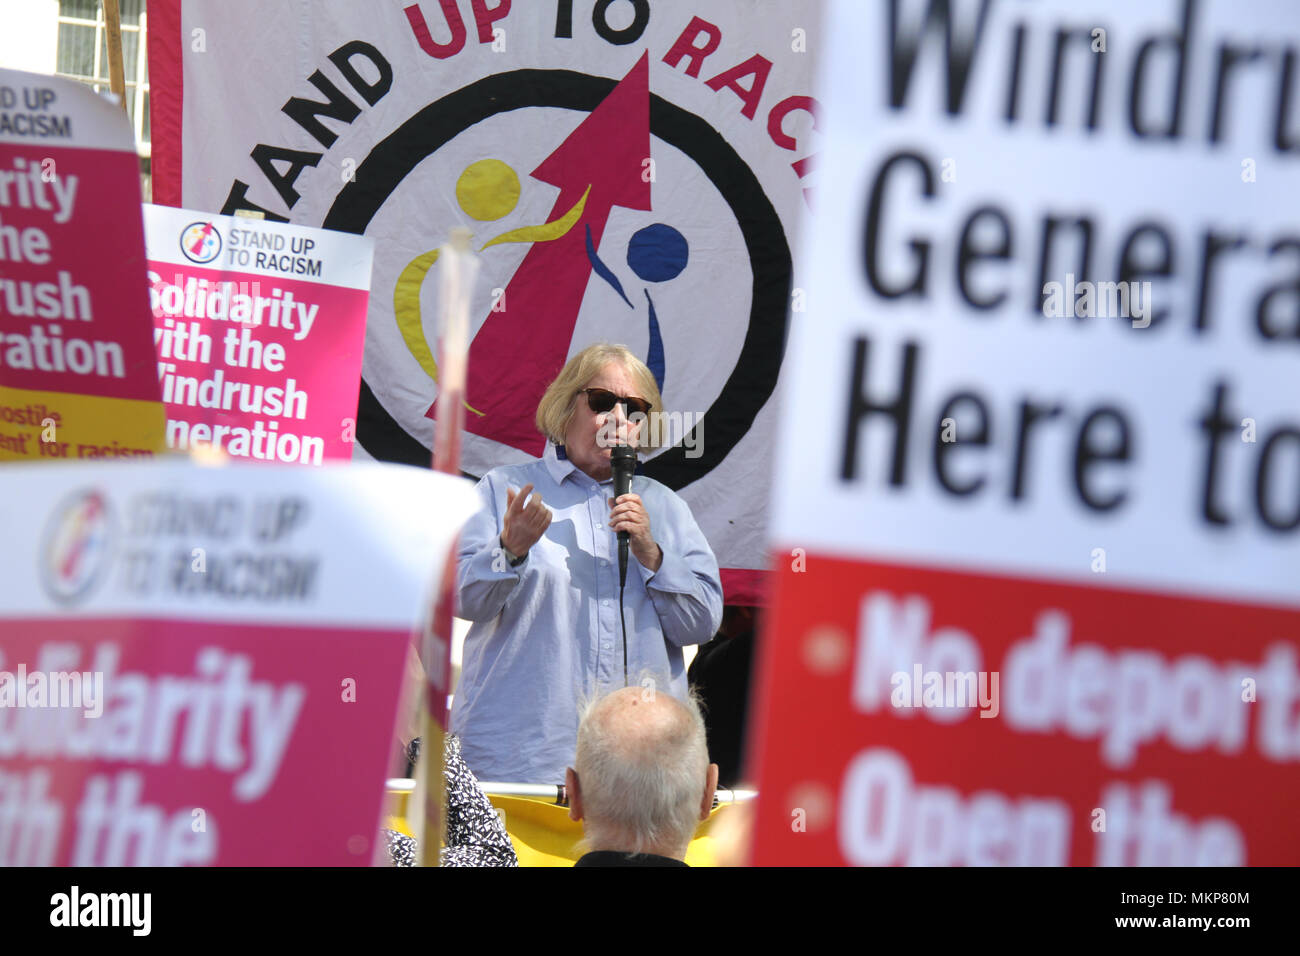 """Whitehall, London- UK: 5 May 2018. Lindsey German from Stop the War Coalition addresses  March for Windrush demonstrators at Whitehall on 5th May, to protest against the """"Hostile environment"""" that has targeted the Windrush generation. A generation of people who were invited from Commonwealth countries as UK citizens have been subject to deportation from  the UK. Credit: David Mbiyu /Alamy Live News - Stock Image"""